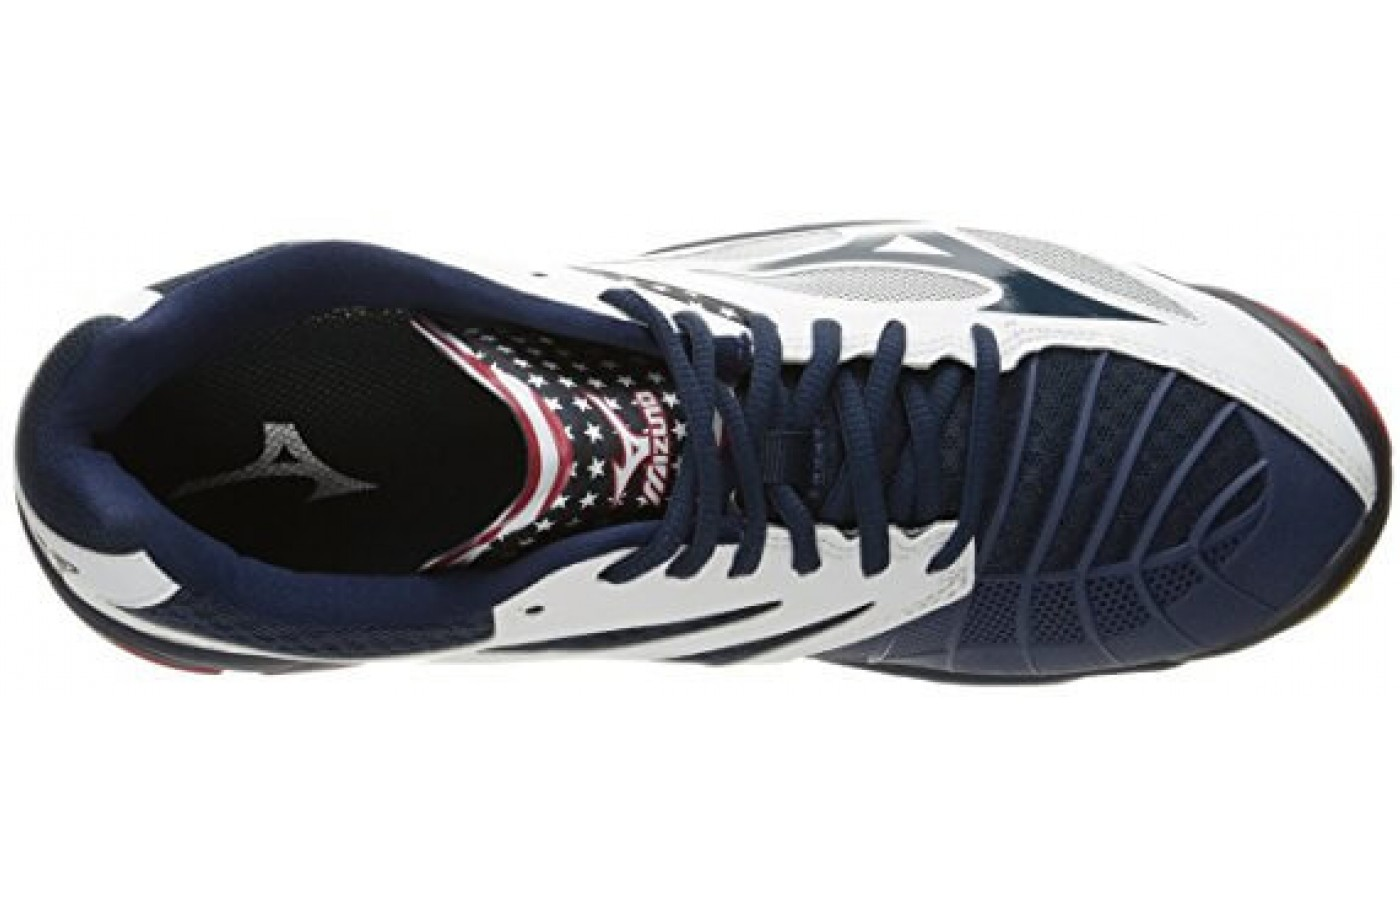 The Mizuno Wave Lightning Z3 features a Dura Shield on the outsole